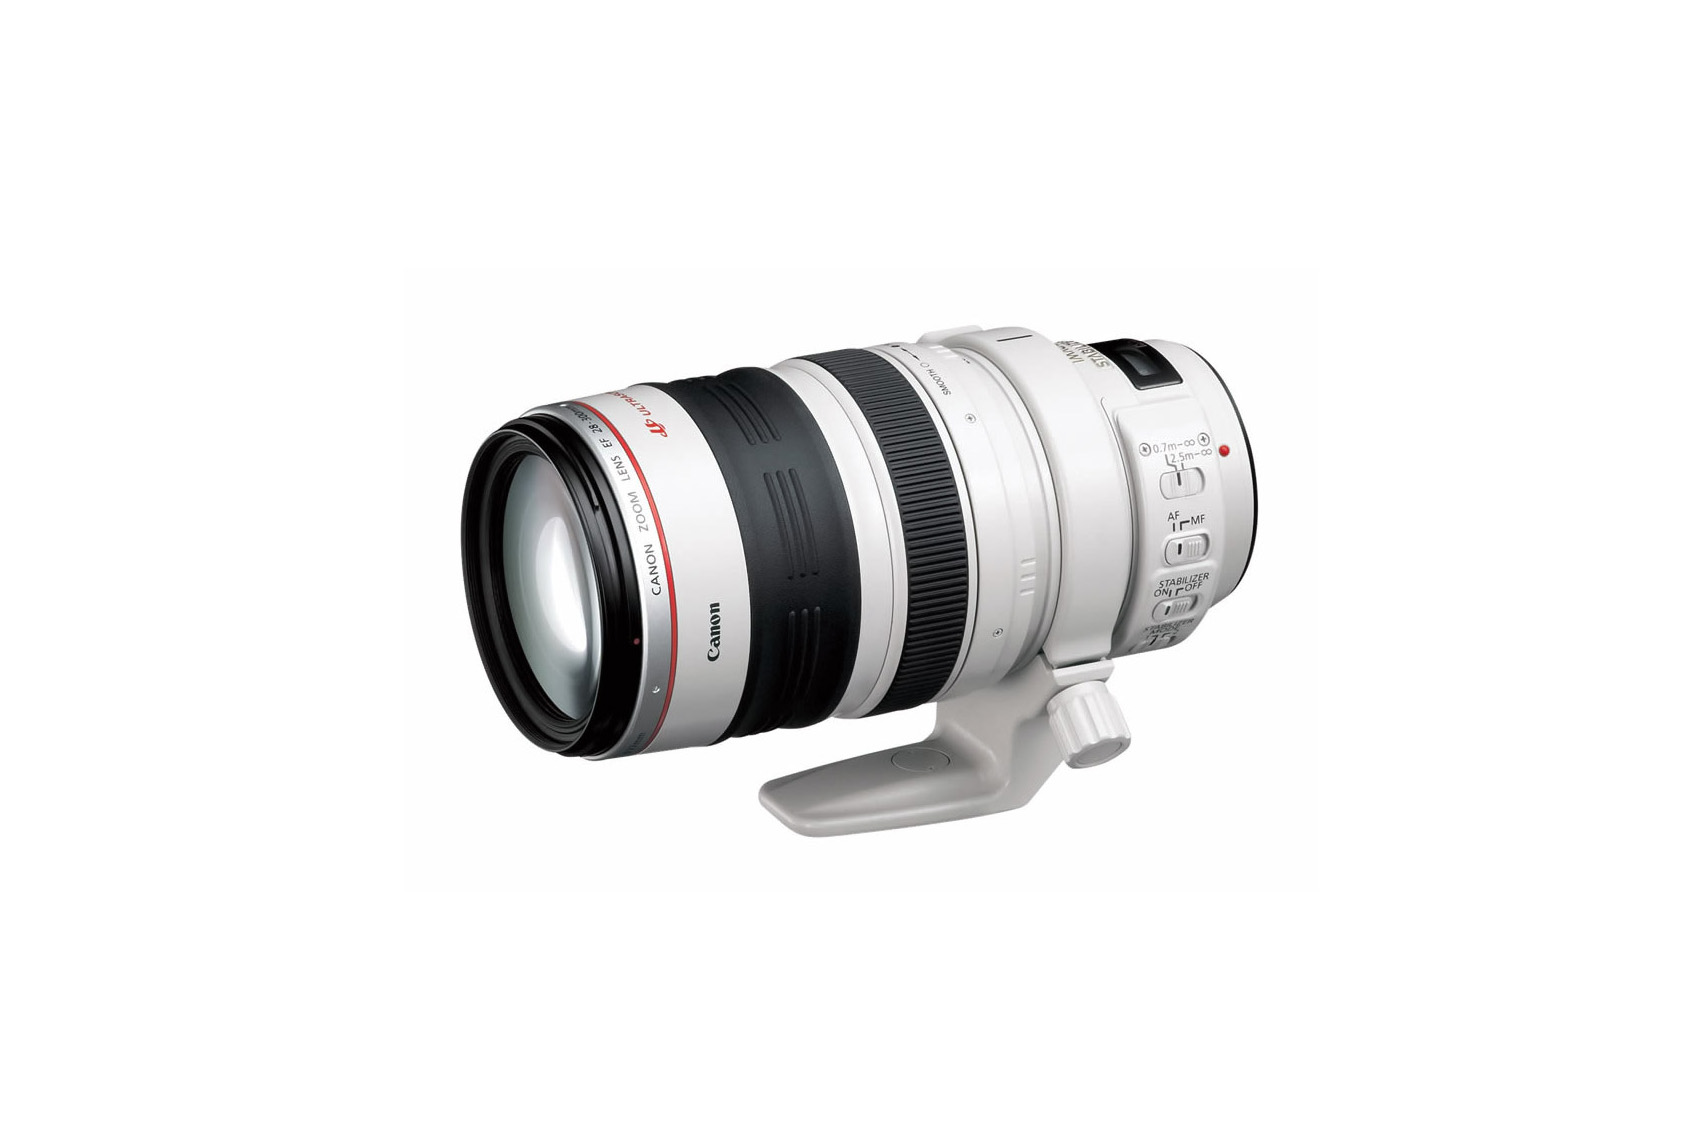 Canon EF 28-300mm f/3.5-5.6 L IS USM (دست دوم)